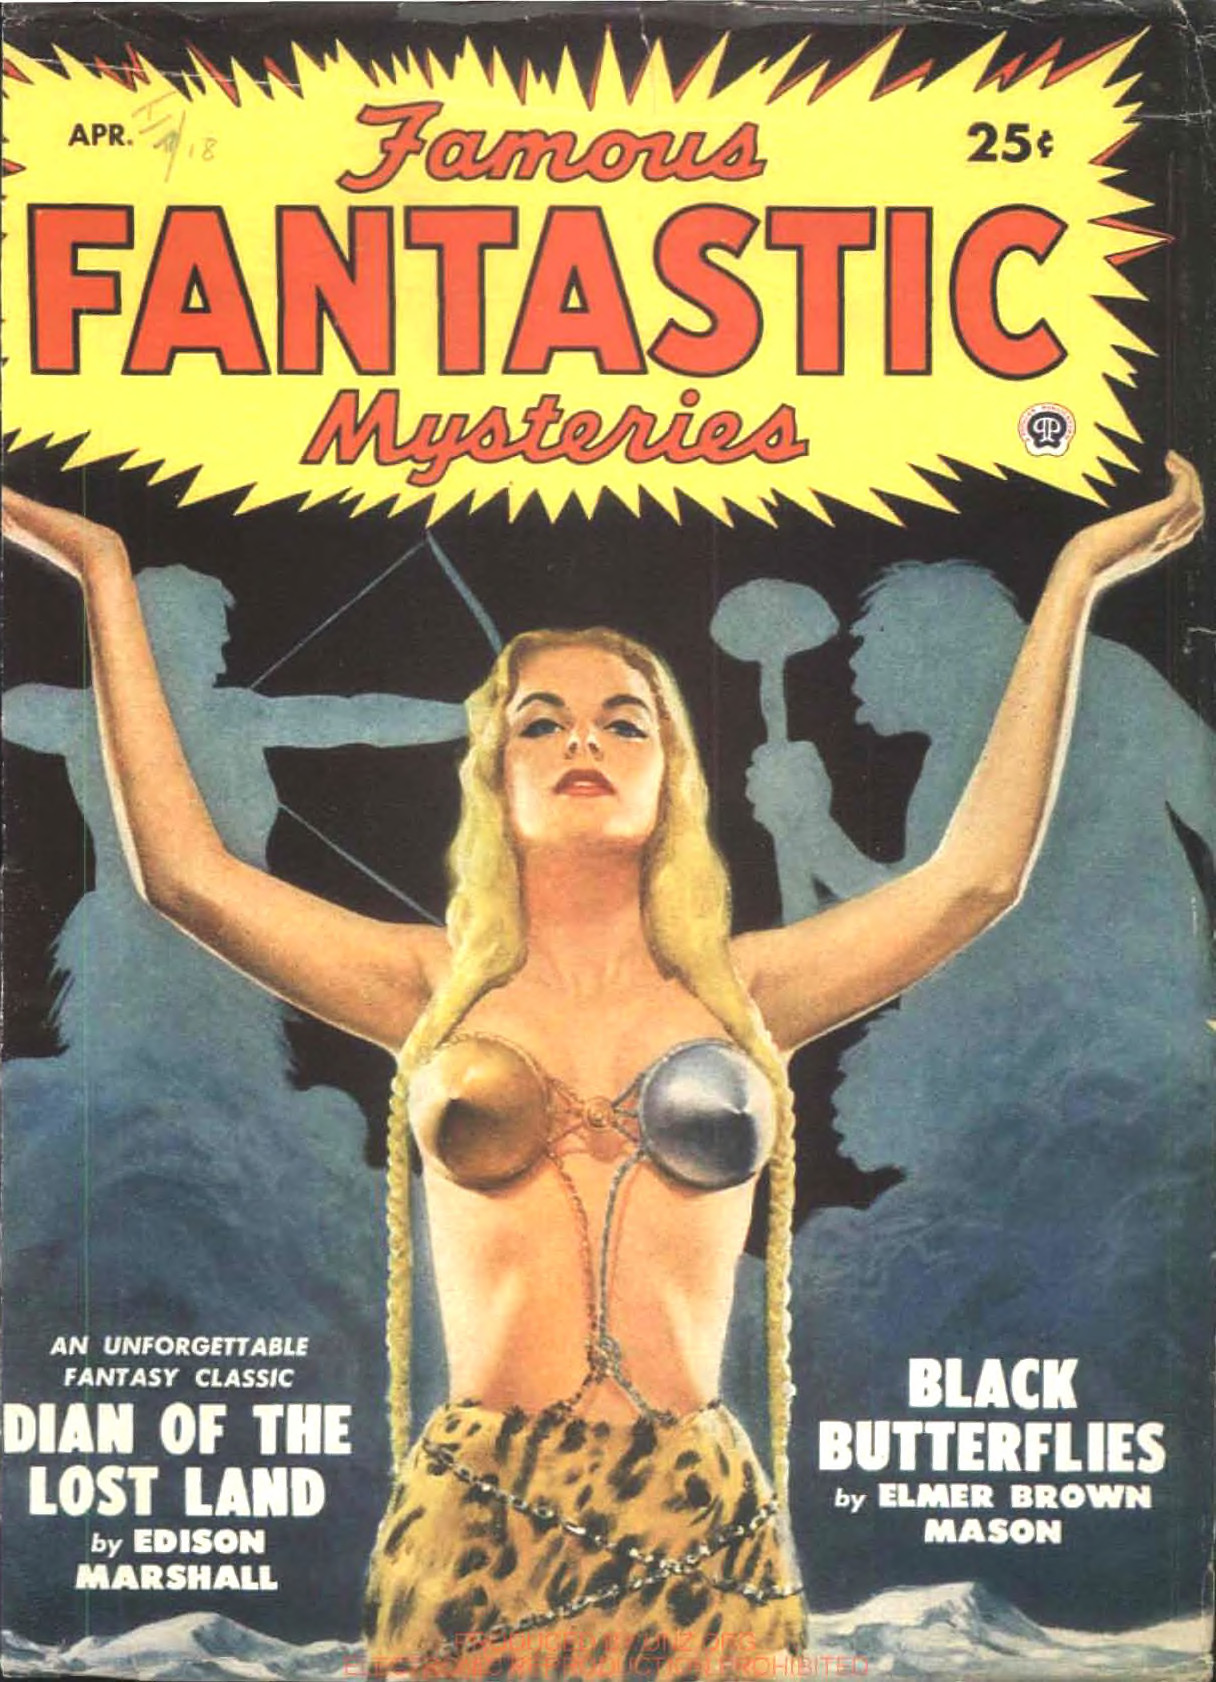 A blond woman in a weird silver and gold brassiere painted by Lawrence Sterne Stevens for the cover of Famous Fantastic Mysteries, April 1949.